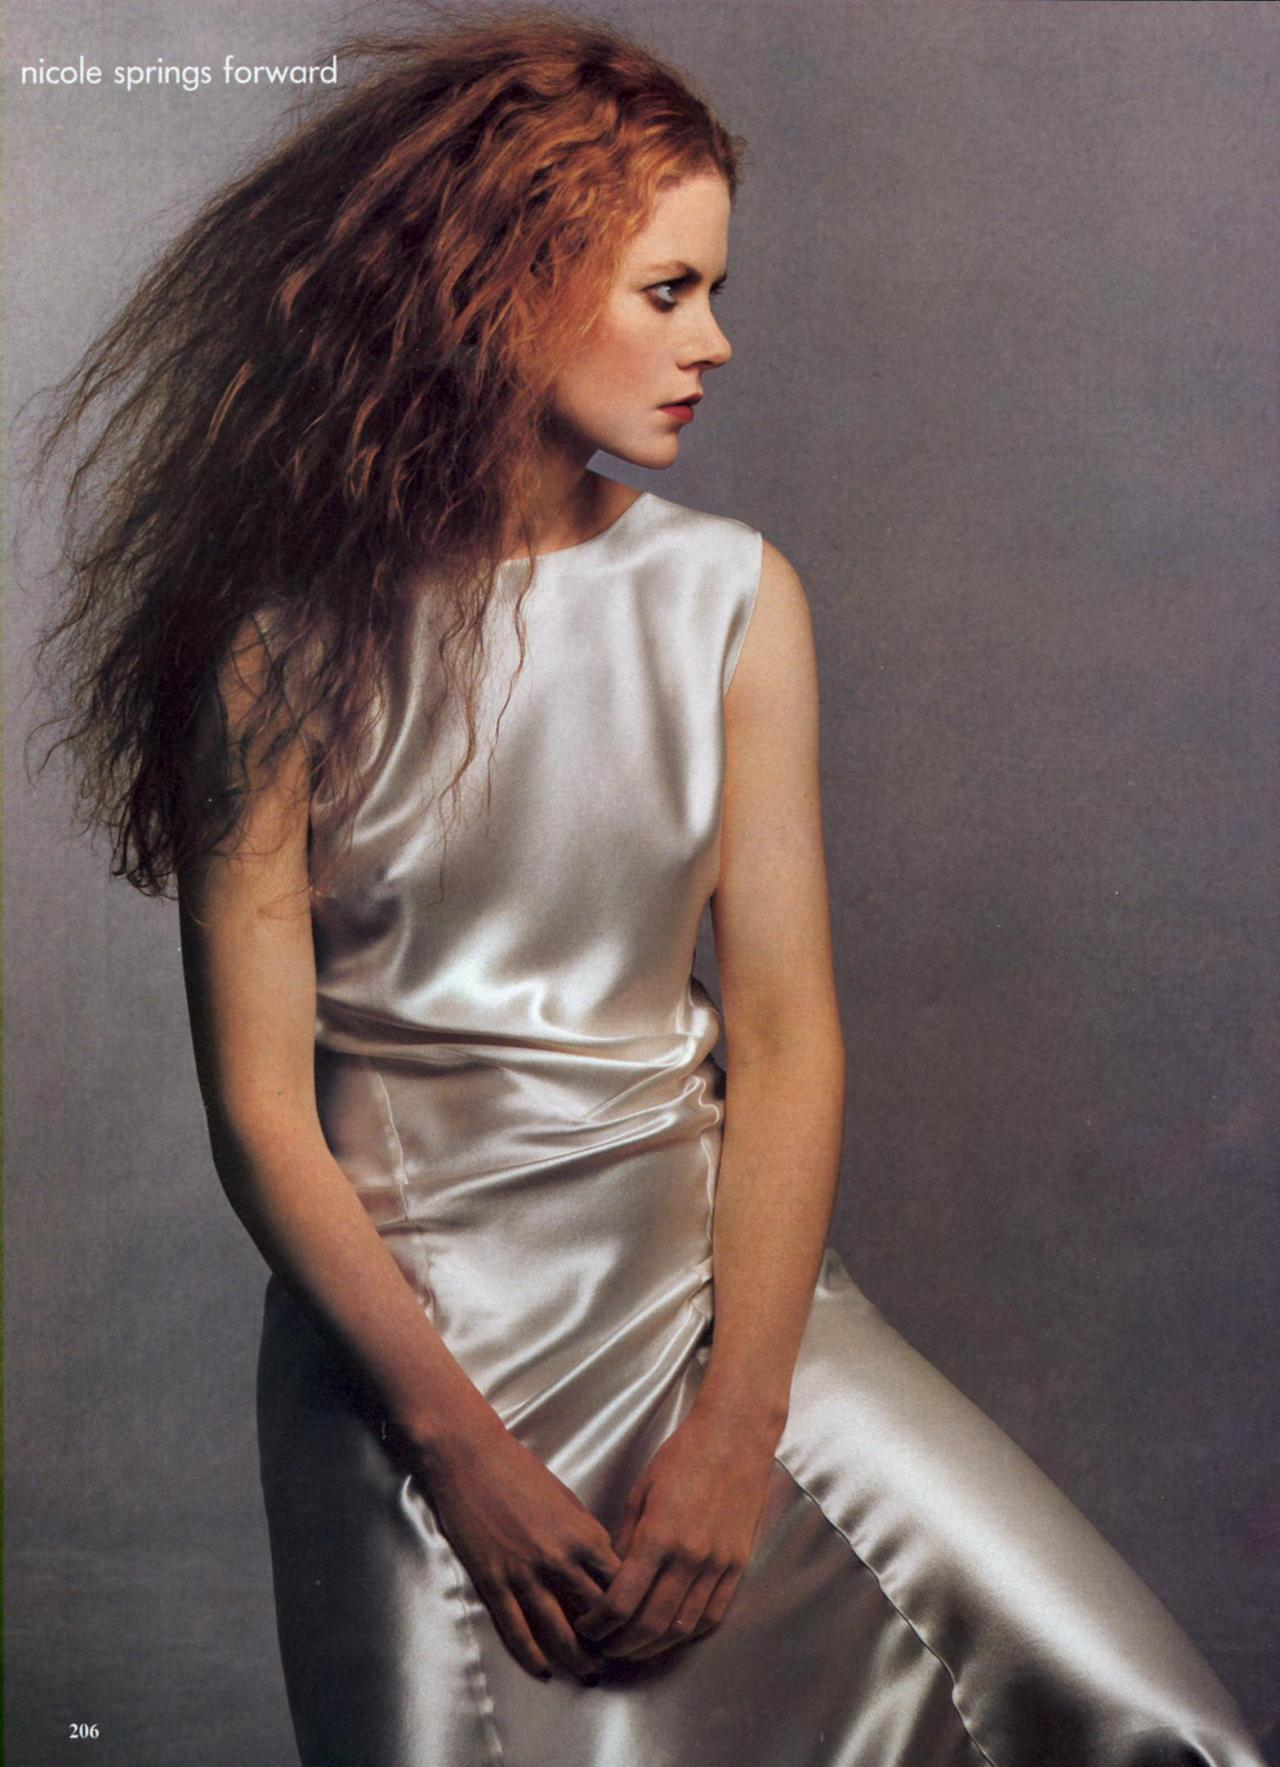 Nicole Kidman: Nicole Springs Forward - Vogue by Steven Meisel, February 1995